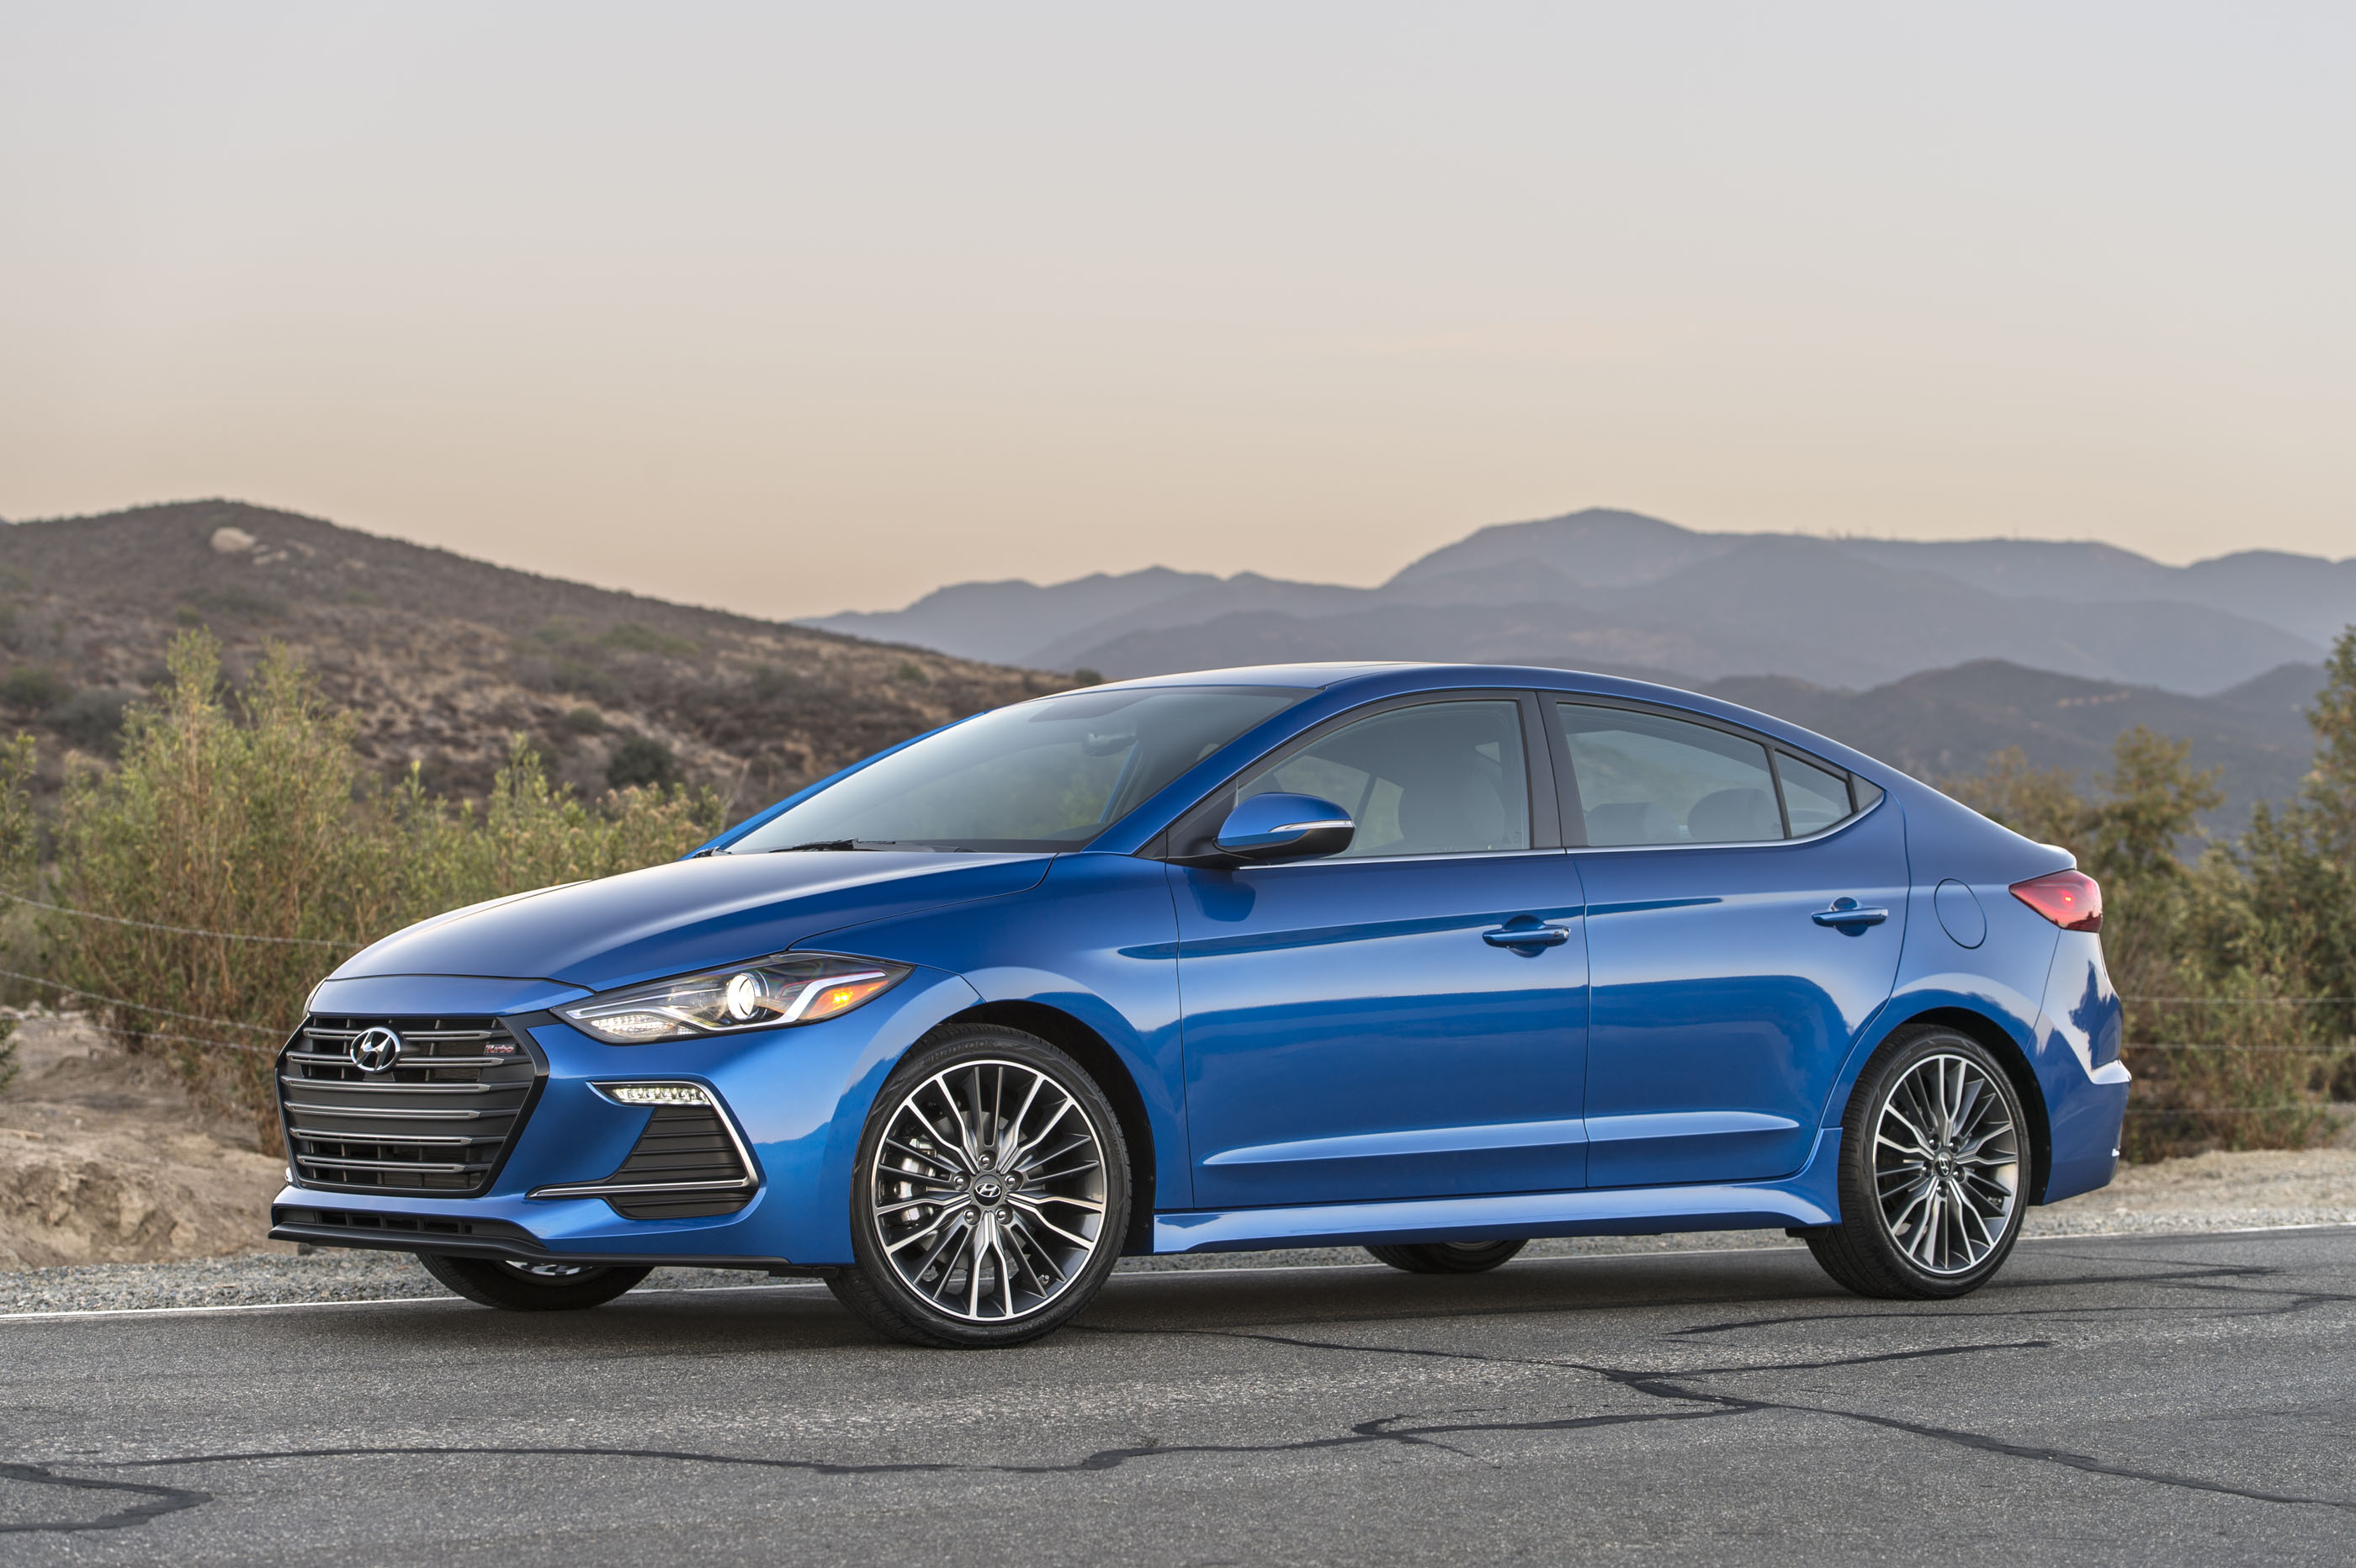 2017 hyundai elantra sport review 201hp turbo 6spd manual cars. Black Bedroom Furniture Sets. Home Design Ideas